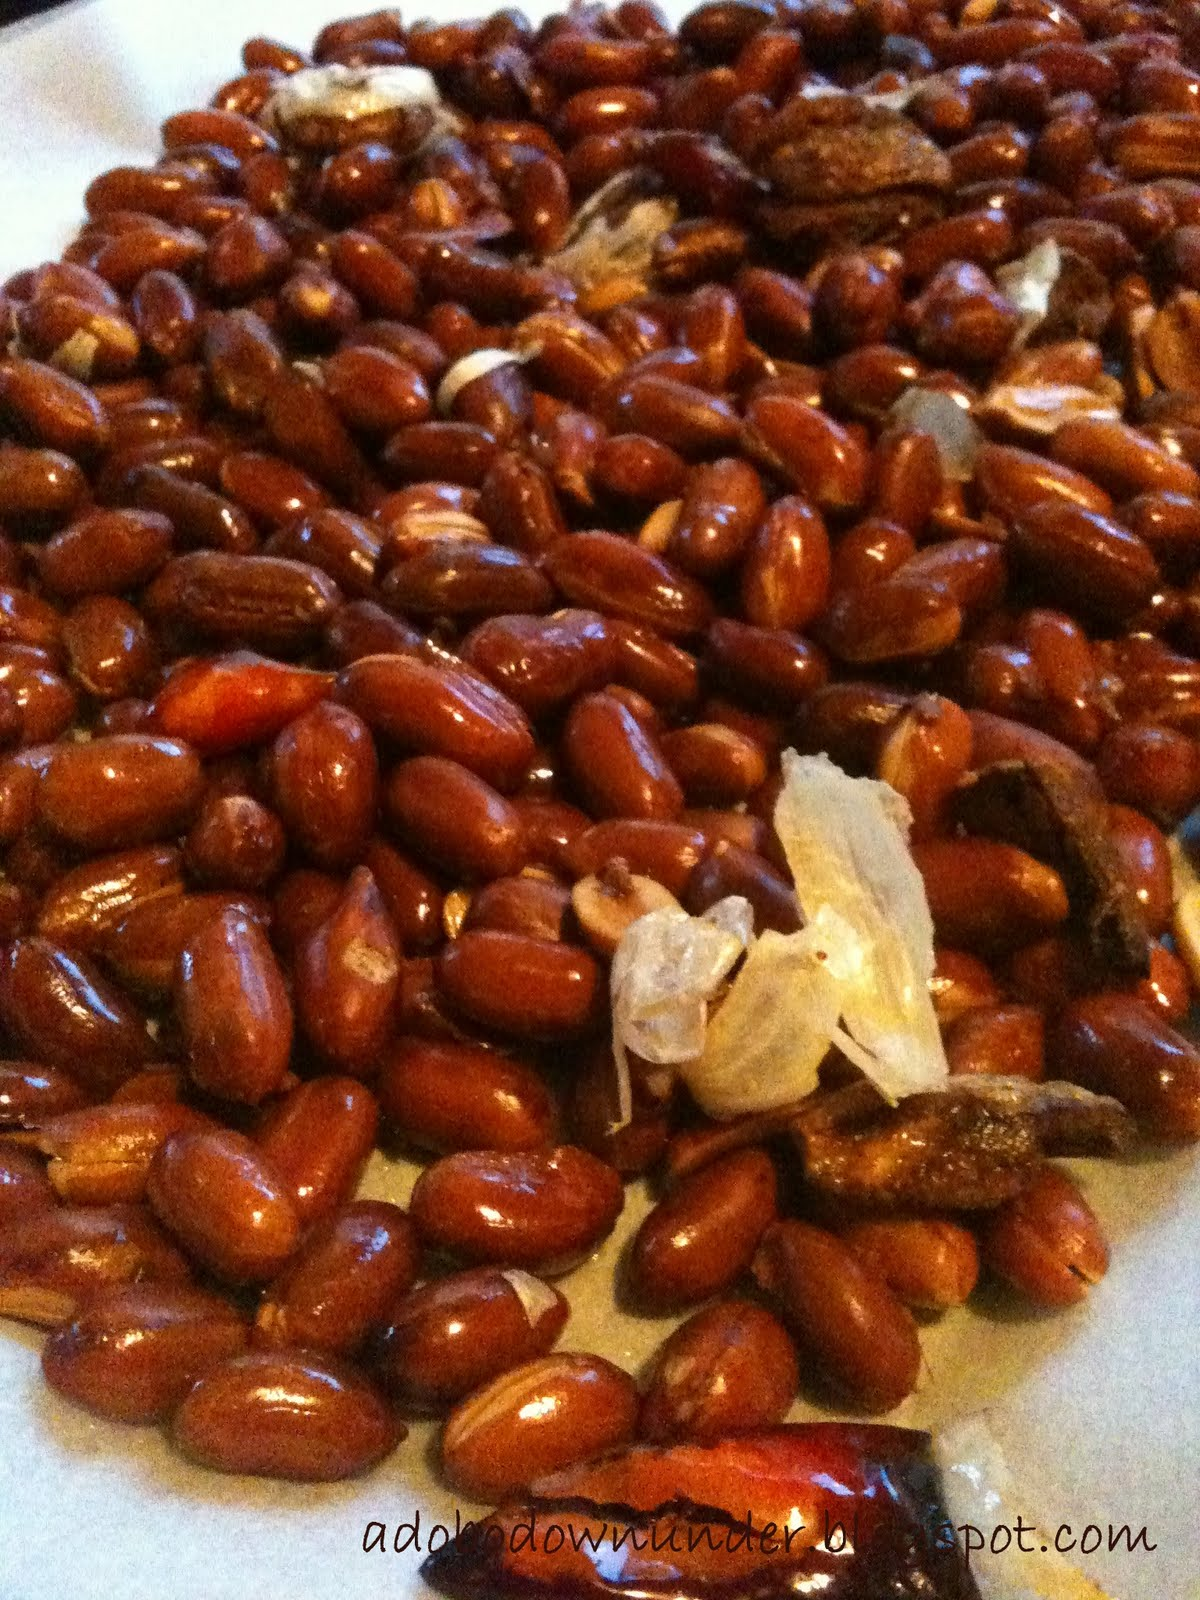 adobo down under: Roasted Peanuts (Adobong Mani)